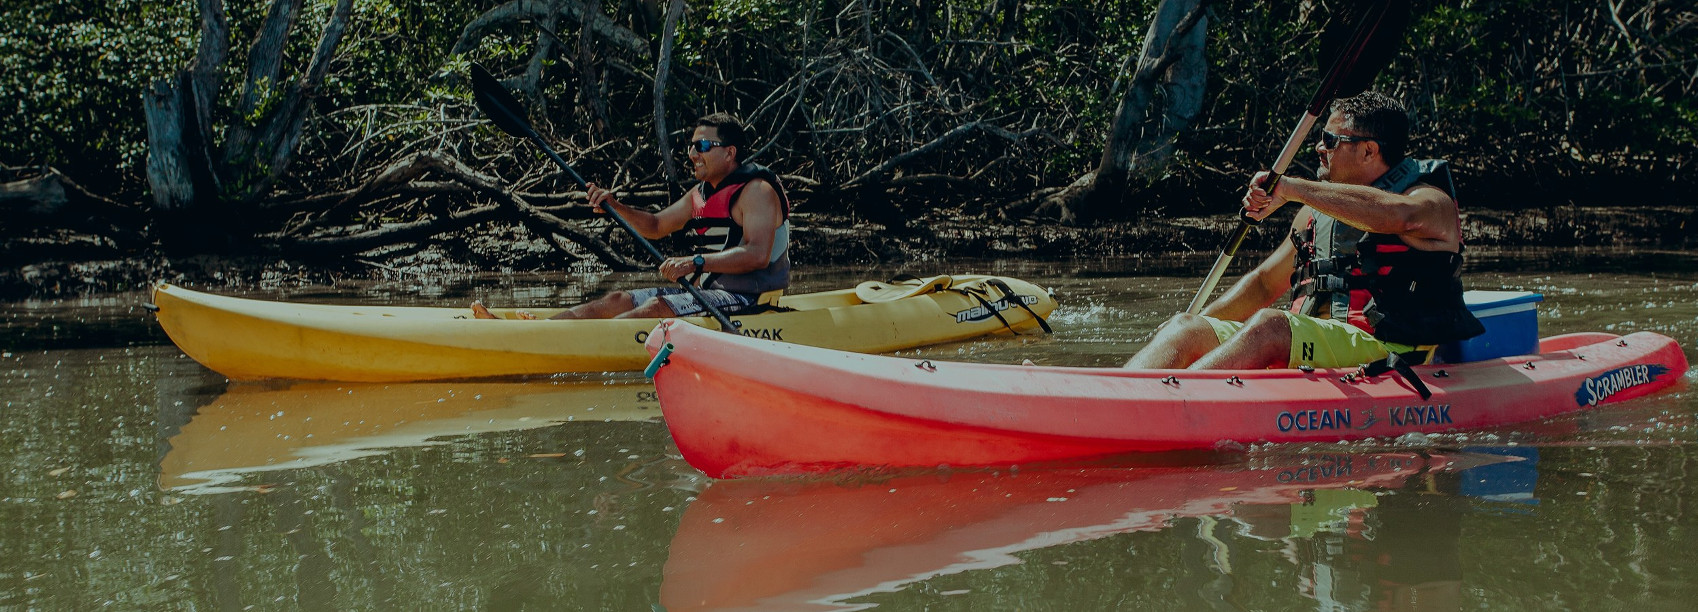 Tamarindo Kayak Estuary Tour - Native's Way Costa Rica - Tamarindo Tours and Transfers